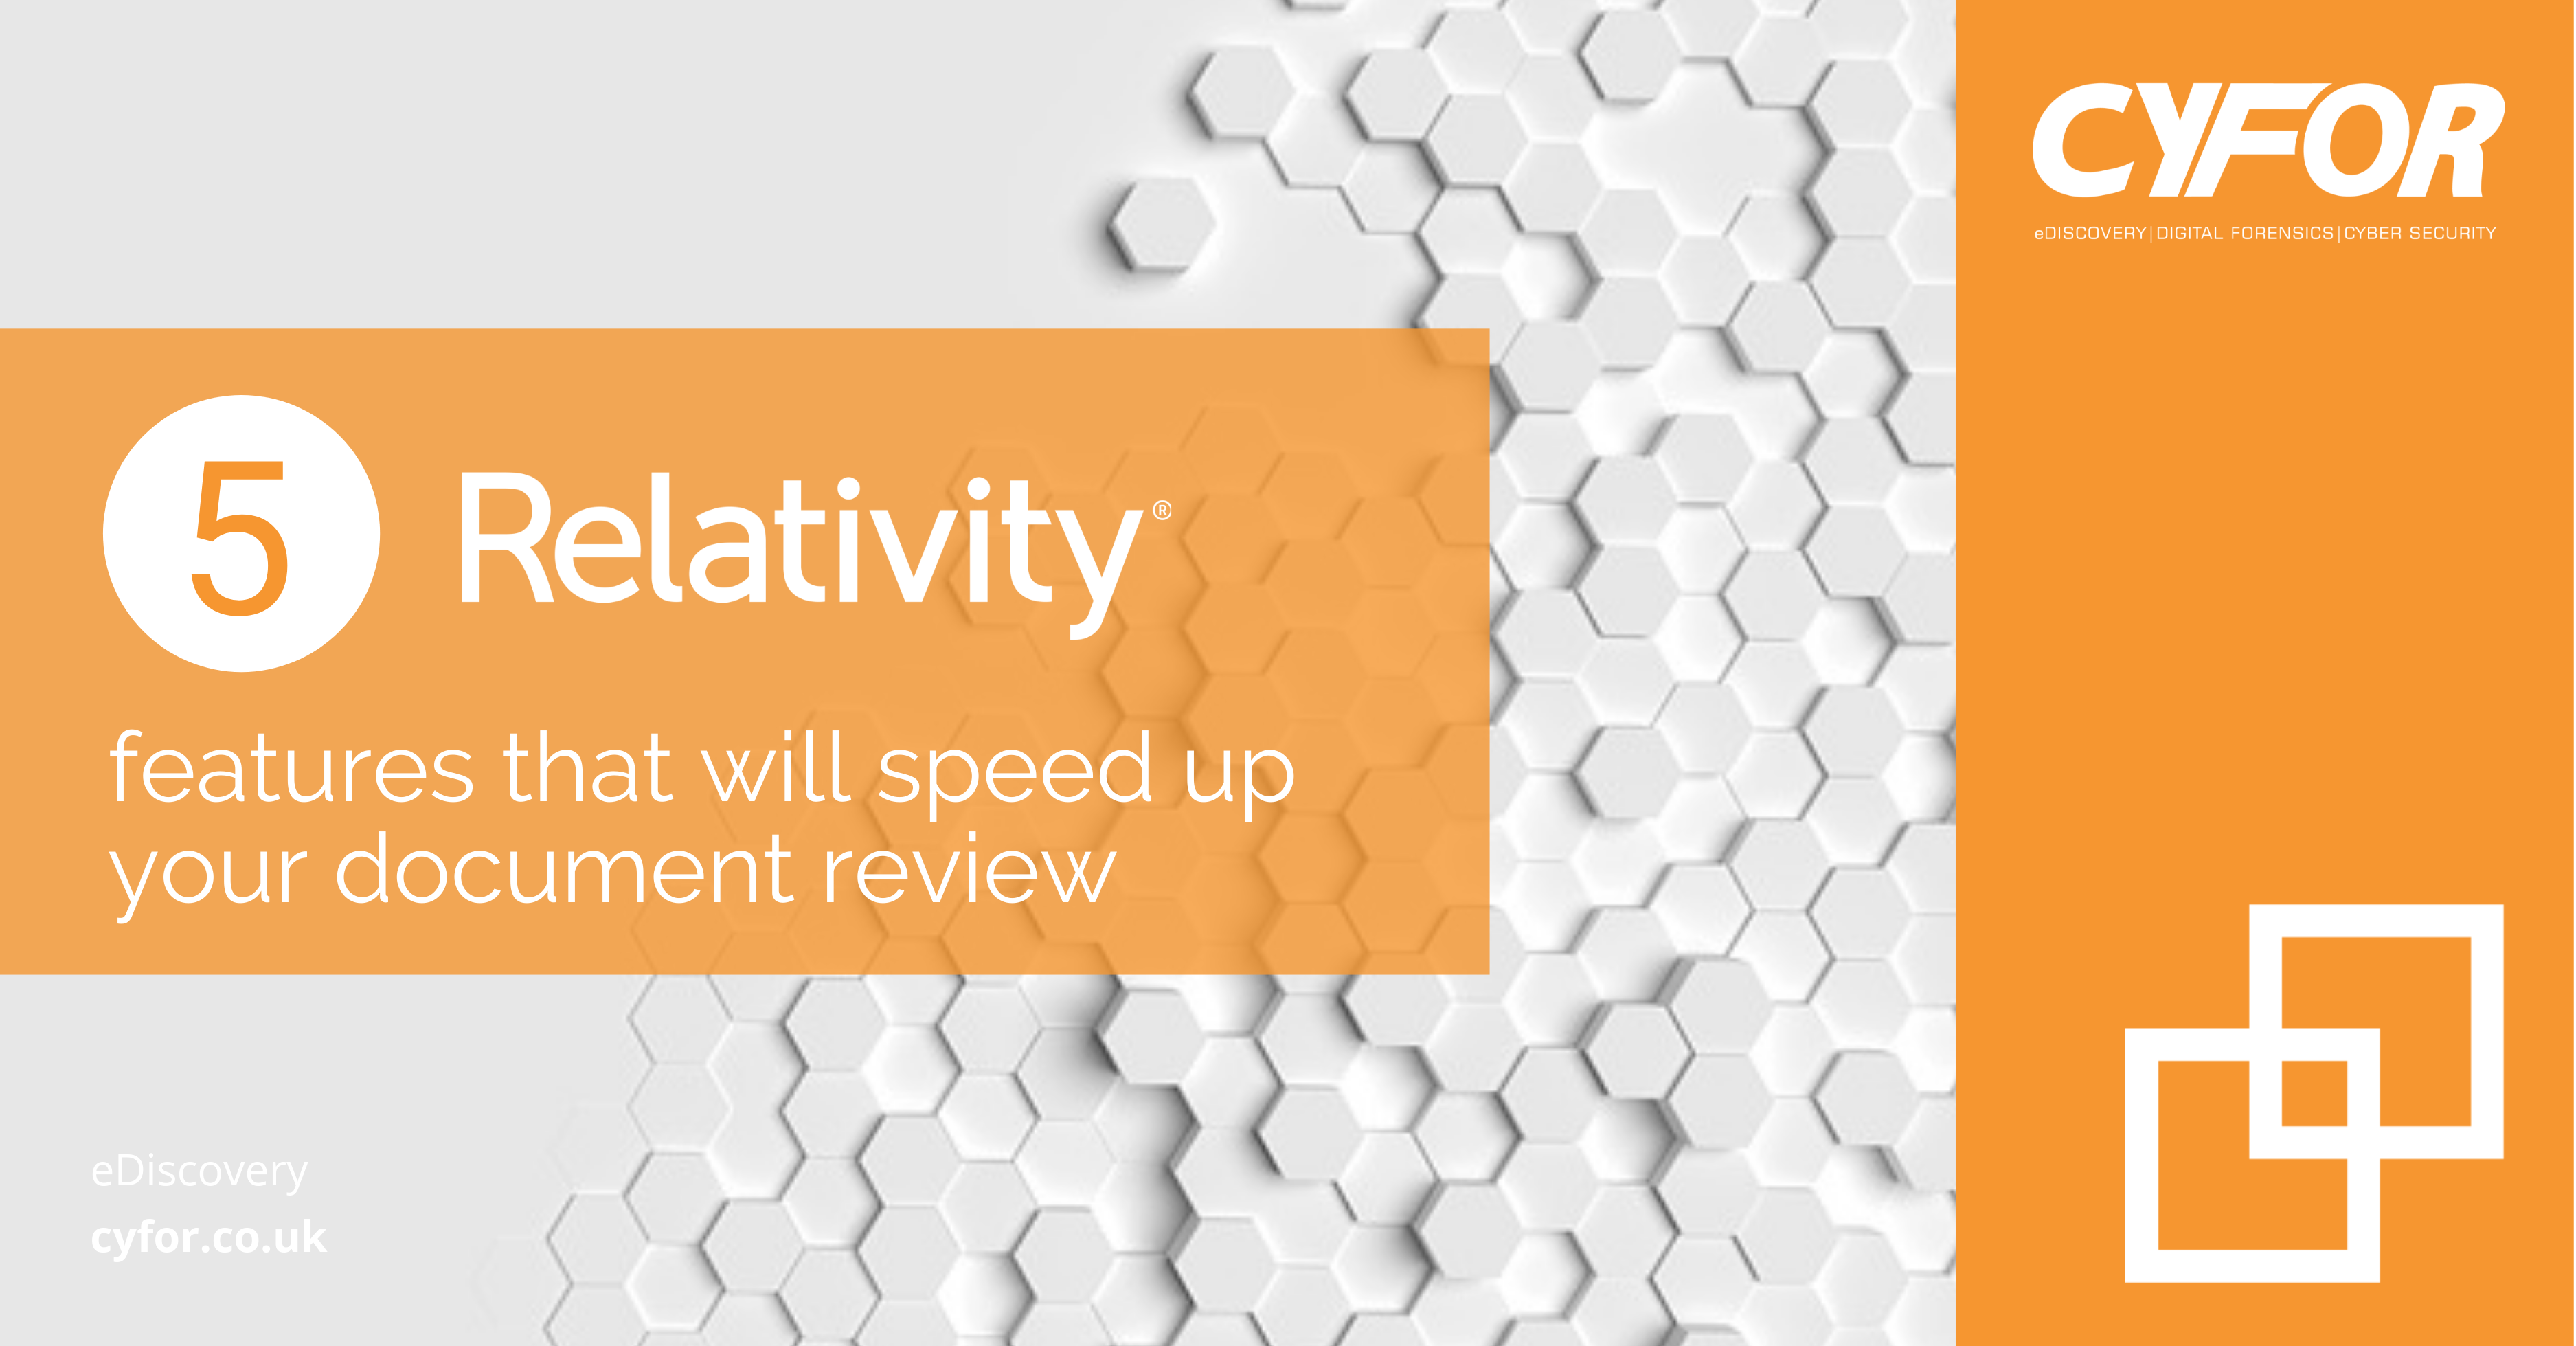 speed up your document review